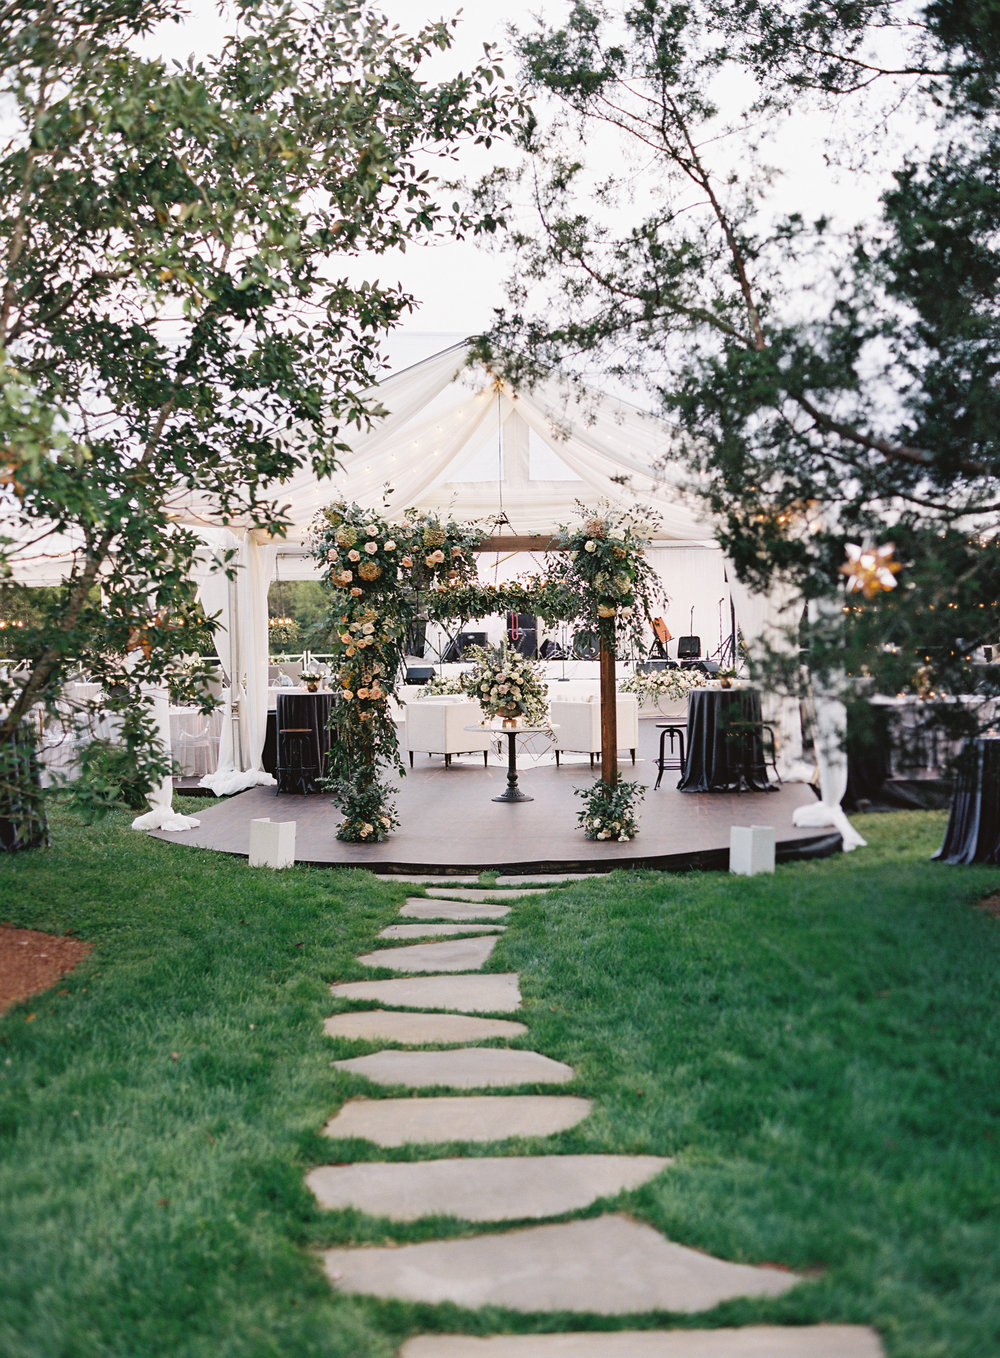 Caroline & Derek's wedding was planned and designed by Big Events Wedding in Nashville, TN. Here the gazebo they got married under is pictured.